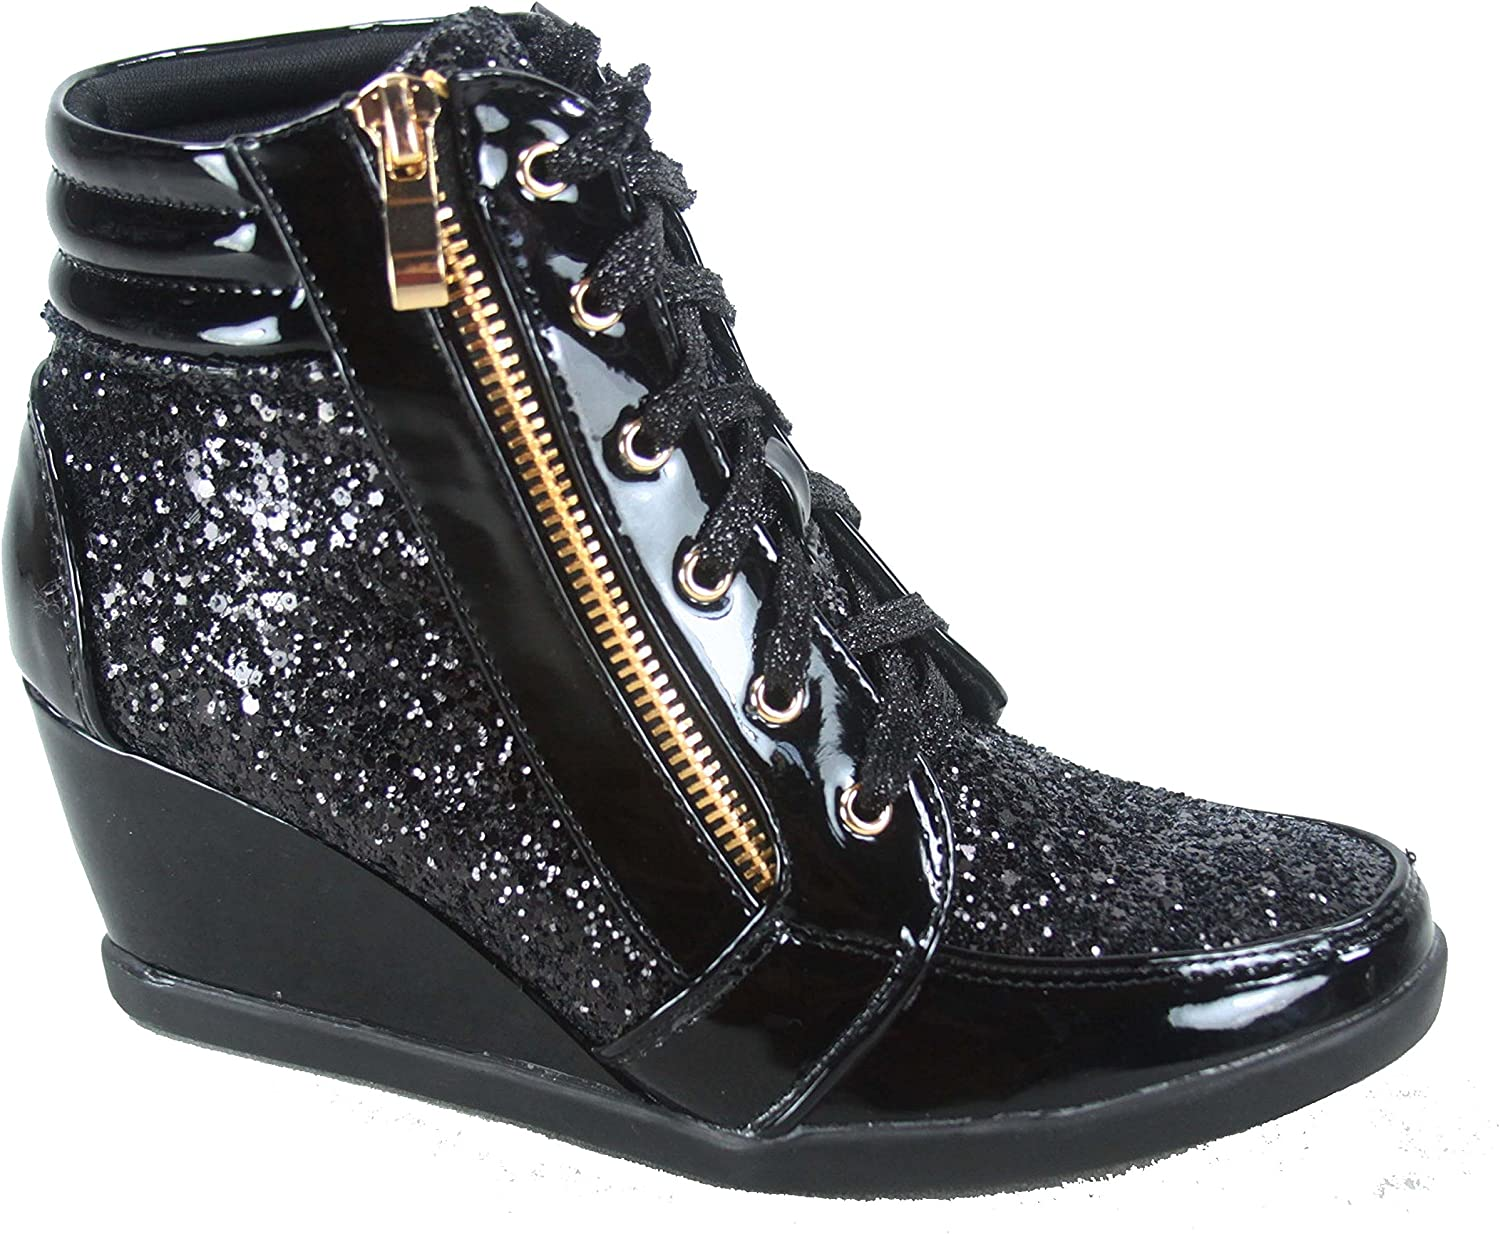 Forever Link Women's Fashion Glitter High Top Lace Up Wedge Sneaker Shoes